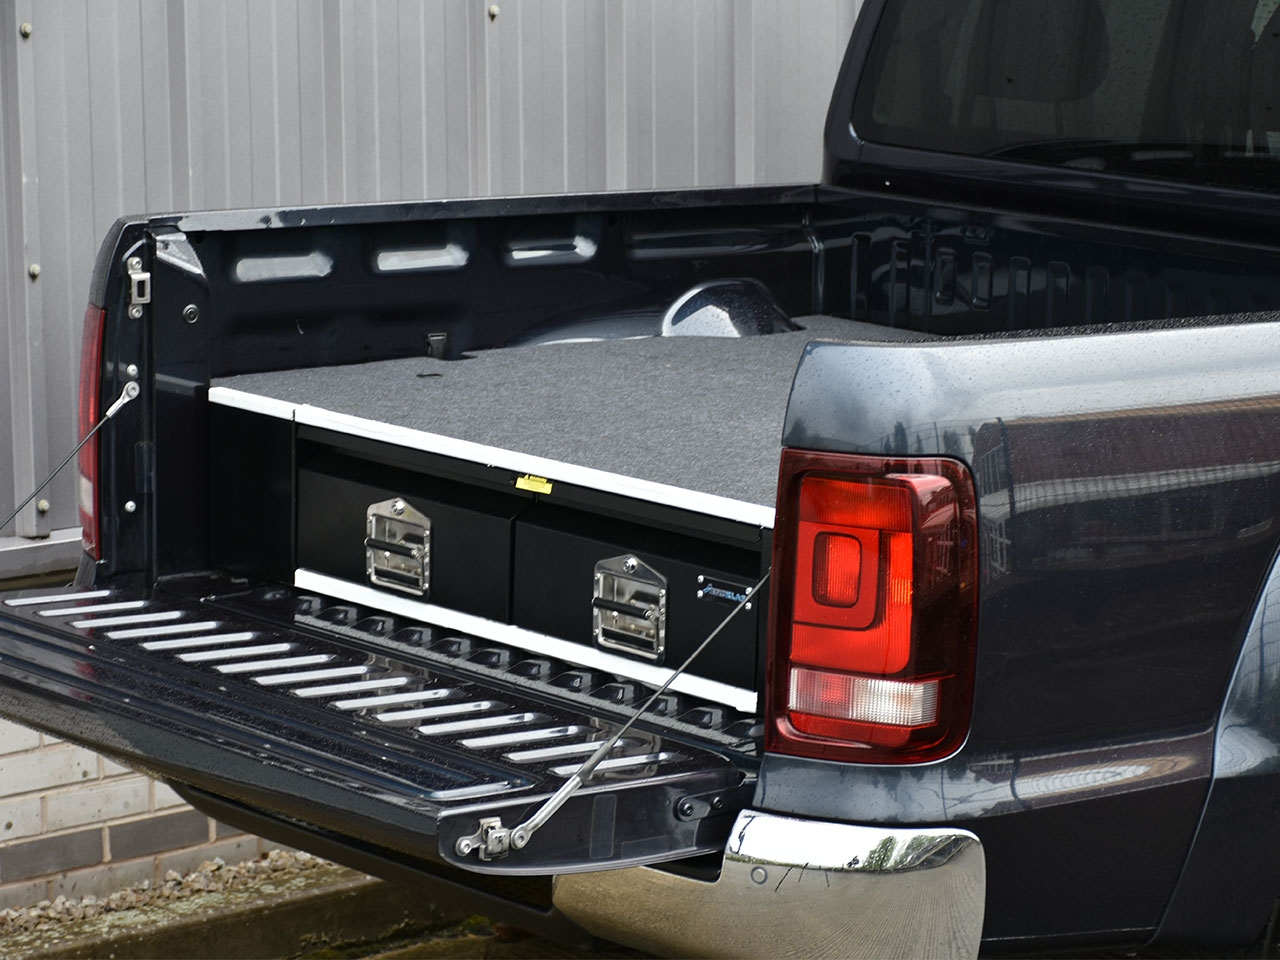 VW Amarok Double Cab Bespoke Load Bed Drawer - 4x4 Accessories & Tyres